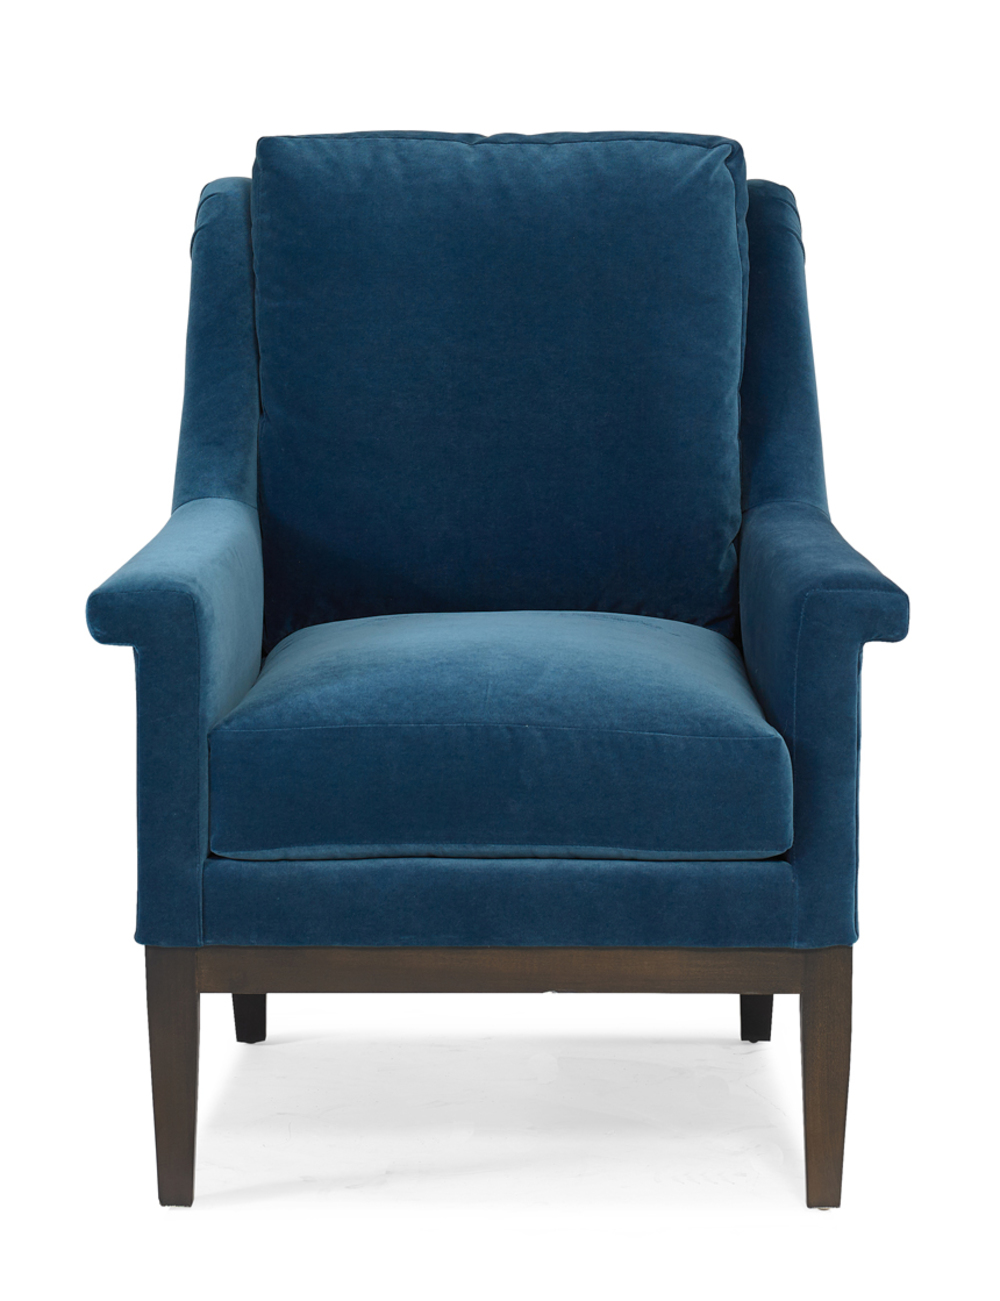 Hickory White - Michelle Chair